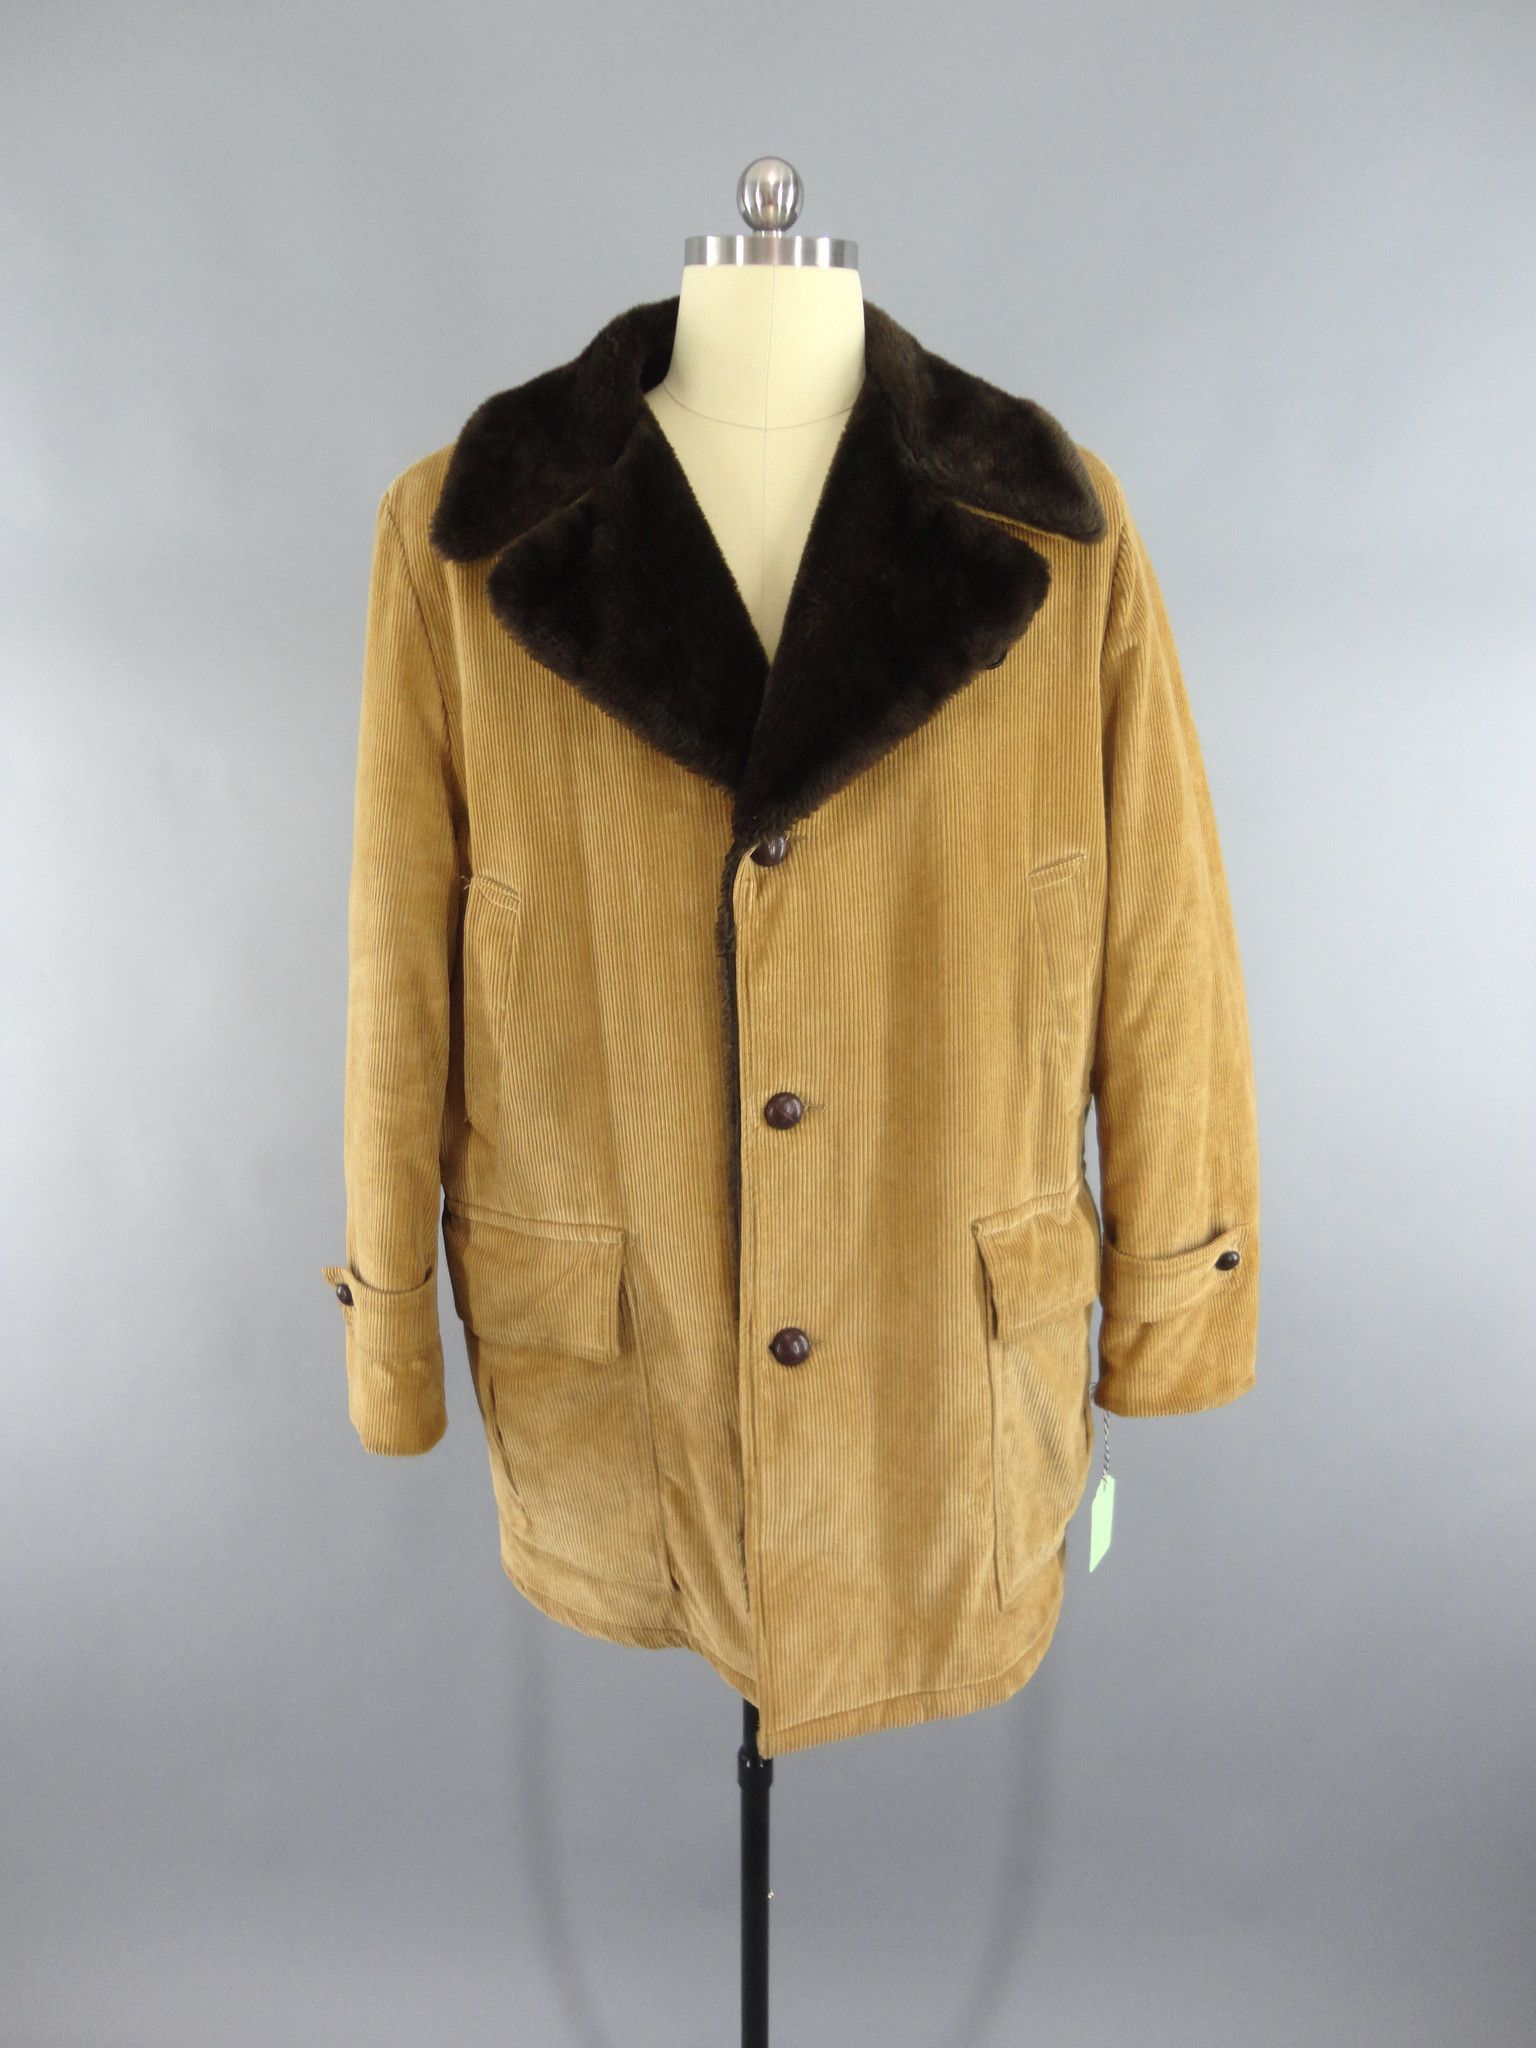 088d152d0c8e Great vintage men s fall coat. Tan corduroy with dark brown faux fur  lining. Button front and flap pockets. The back of the tag has someone s  initials and a ...